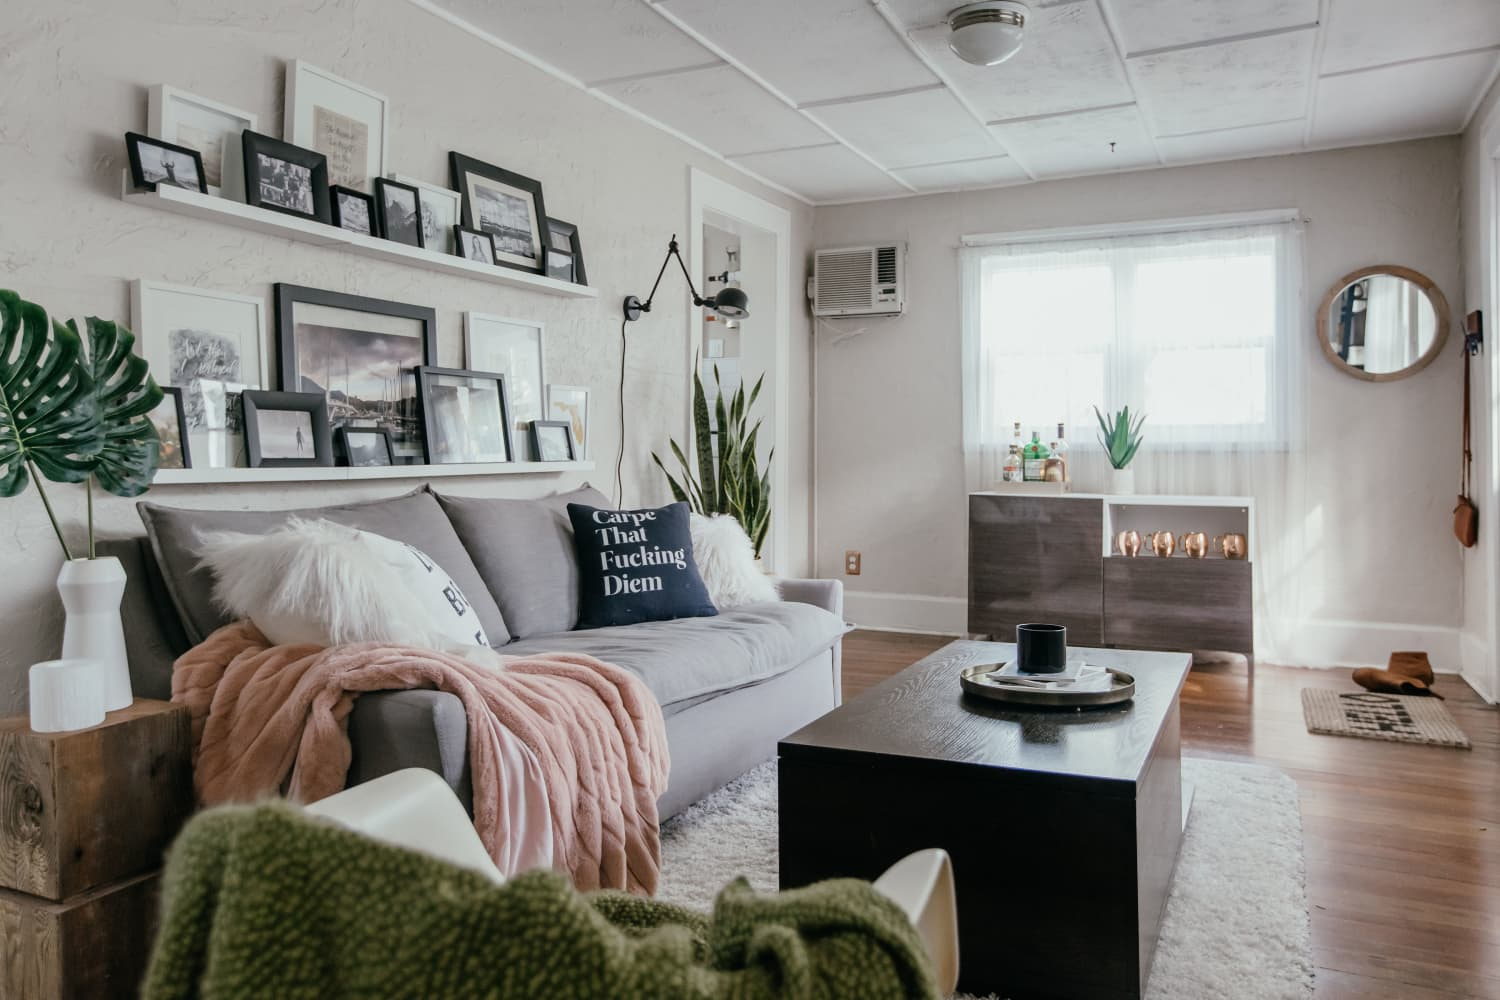 This Small But Bright Garage Apartment Is a Photographer's Dream Rental